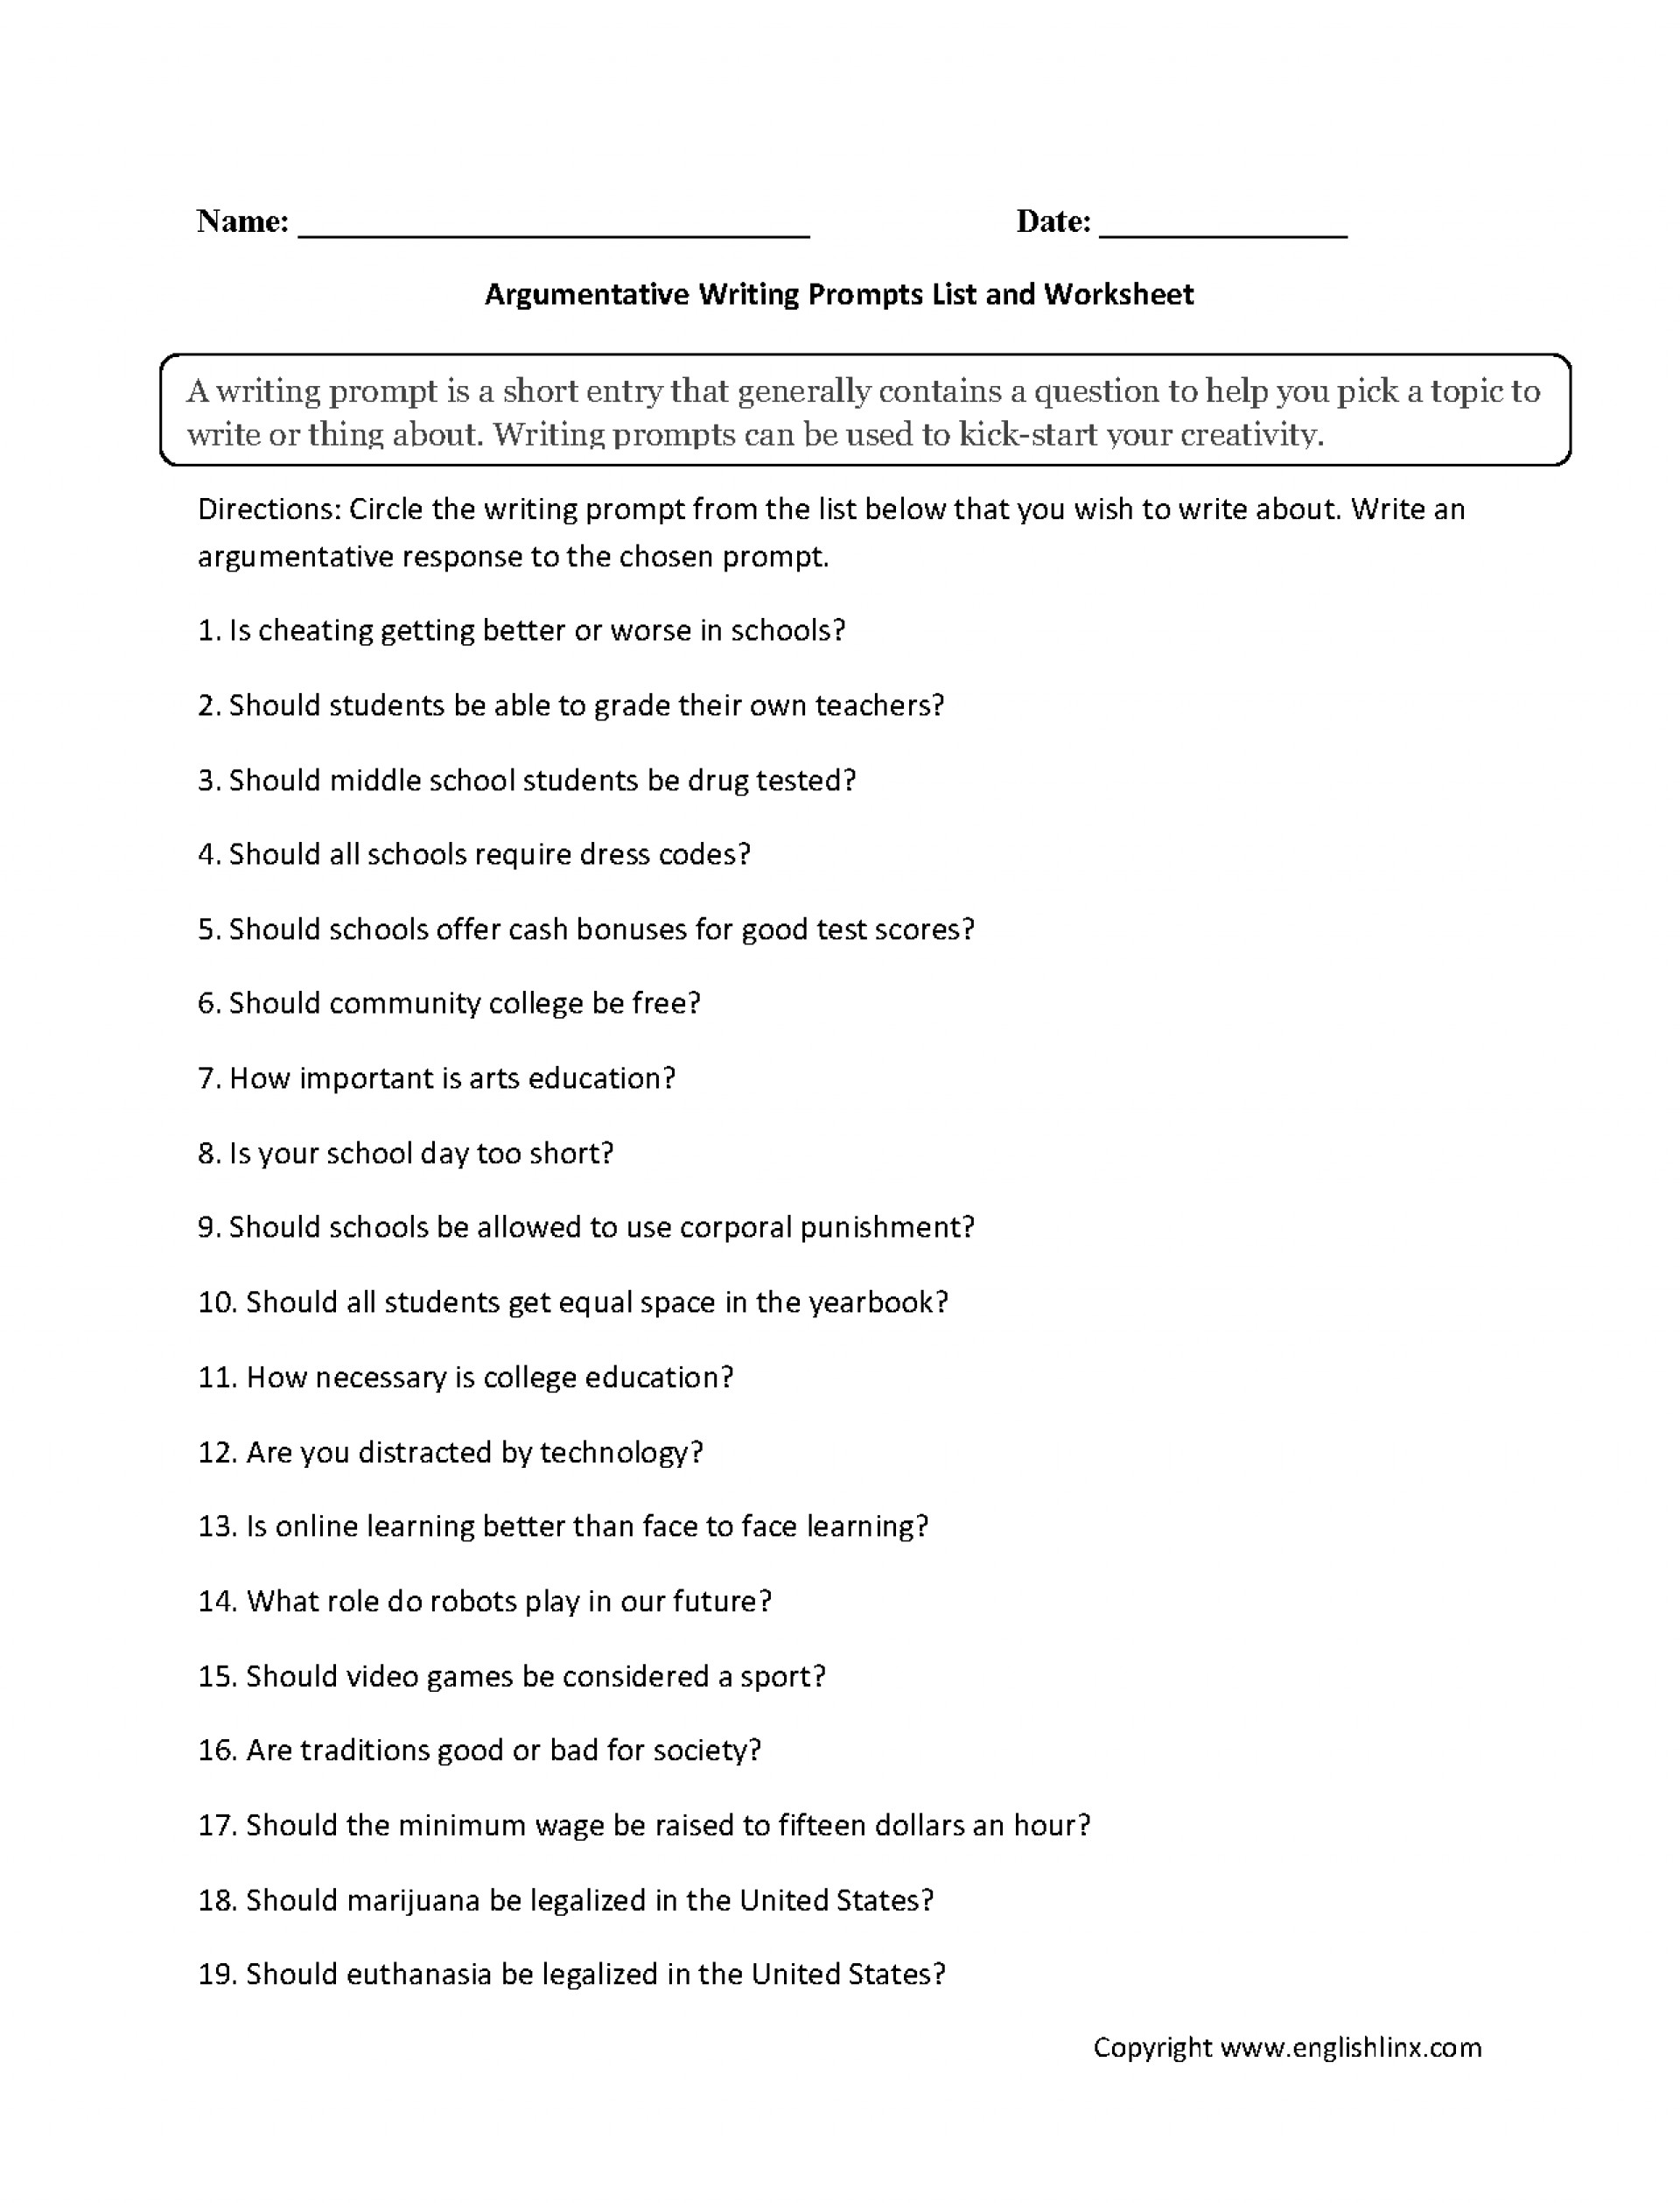 011 Essay Example Argumentative Writing Prompts List Worksheet Sports Impressive Topics Medicine About Youth 1920